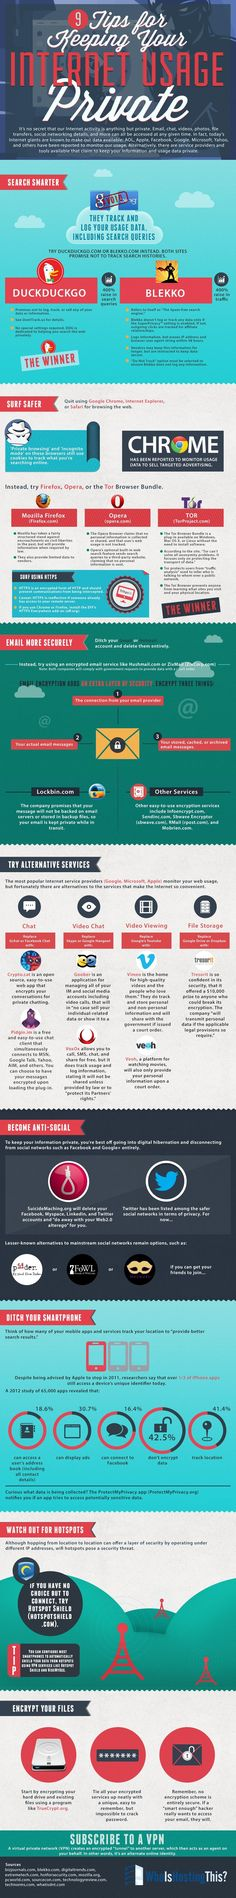 Infographic: 9 Tips for Keeping Your Internet Usage Private